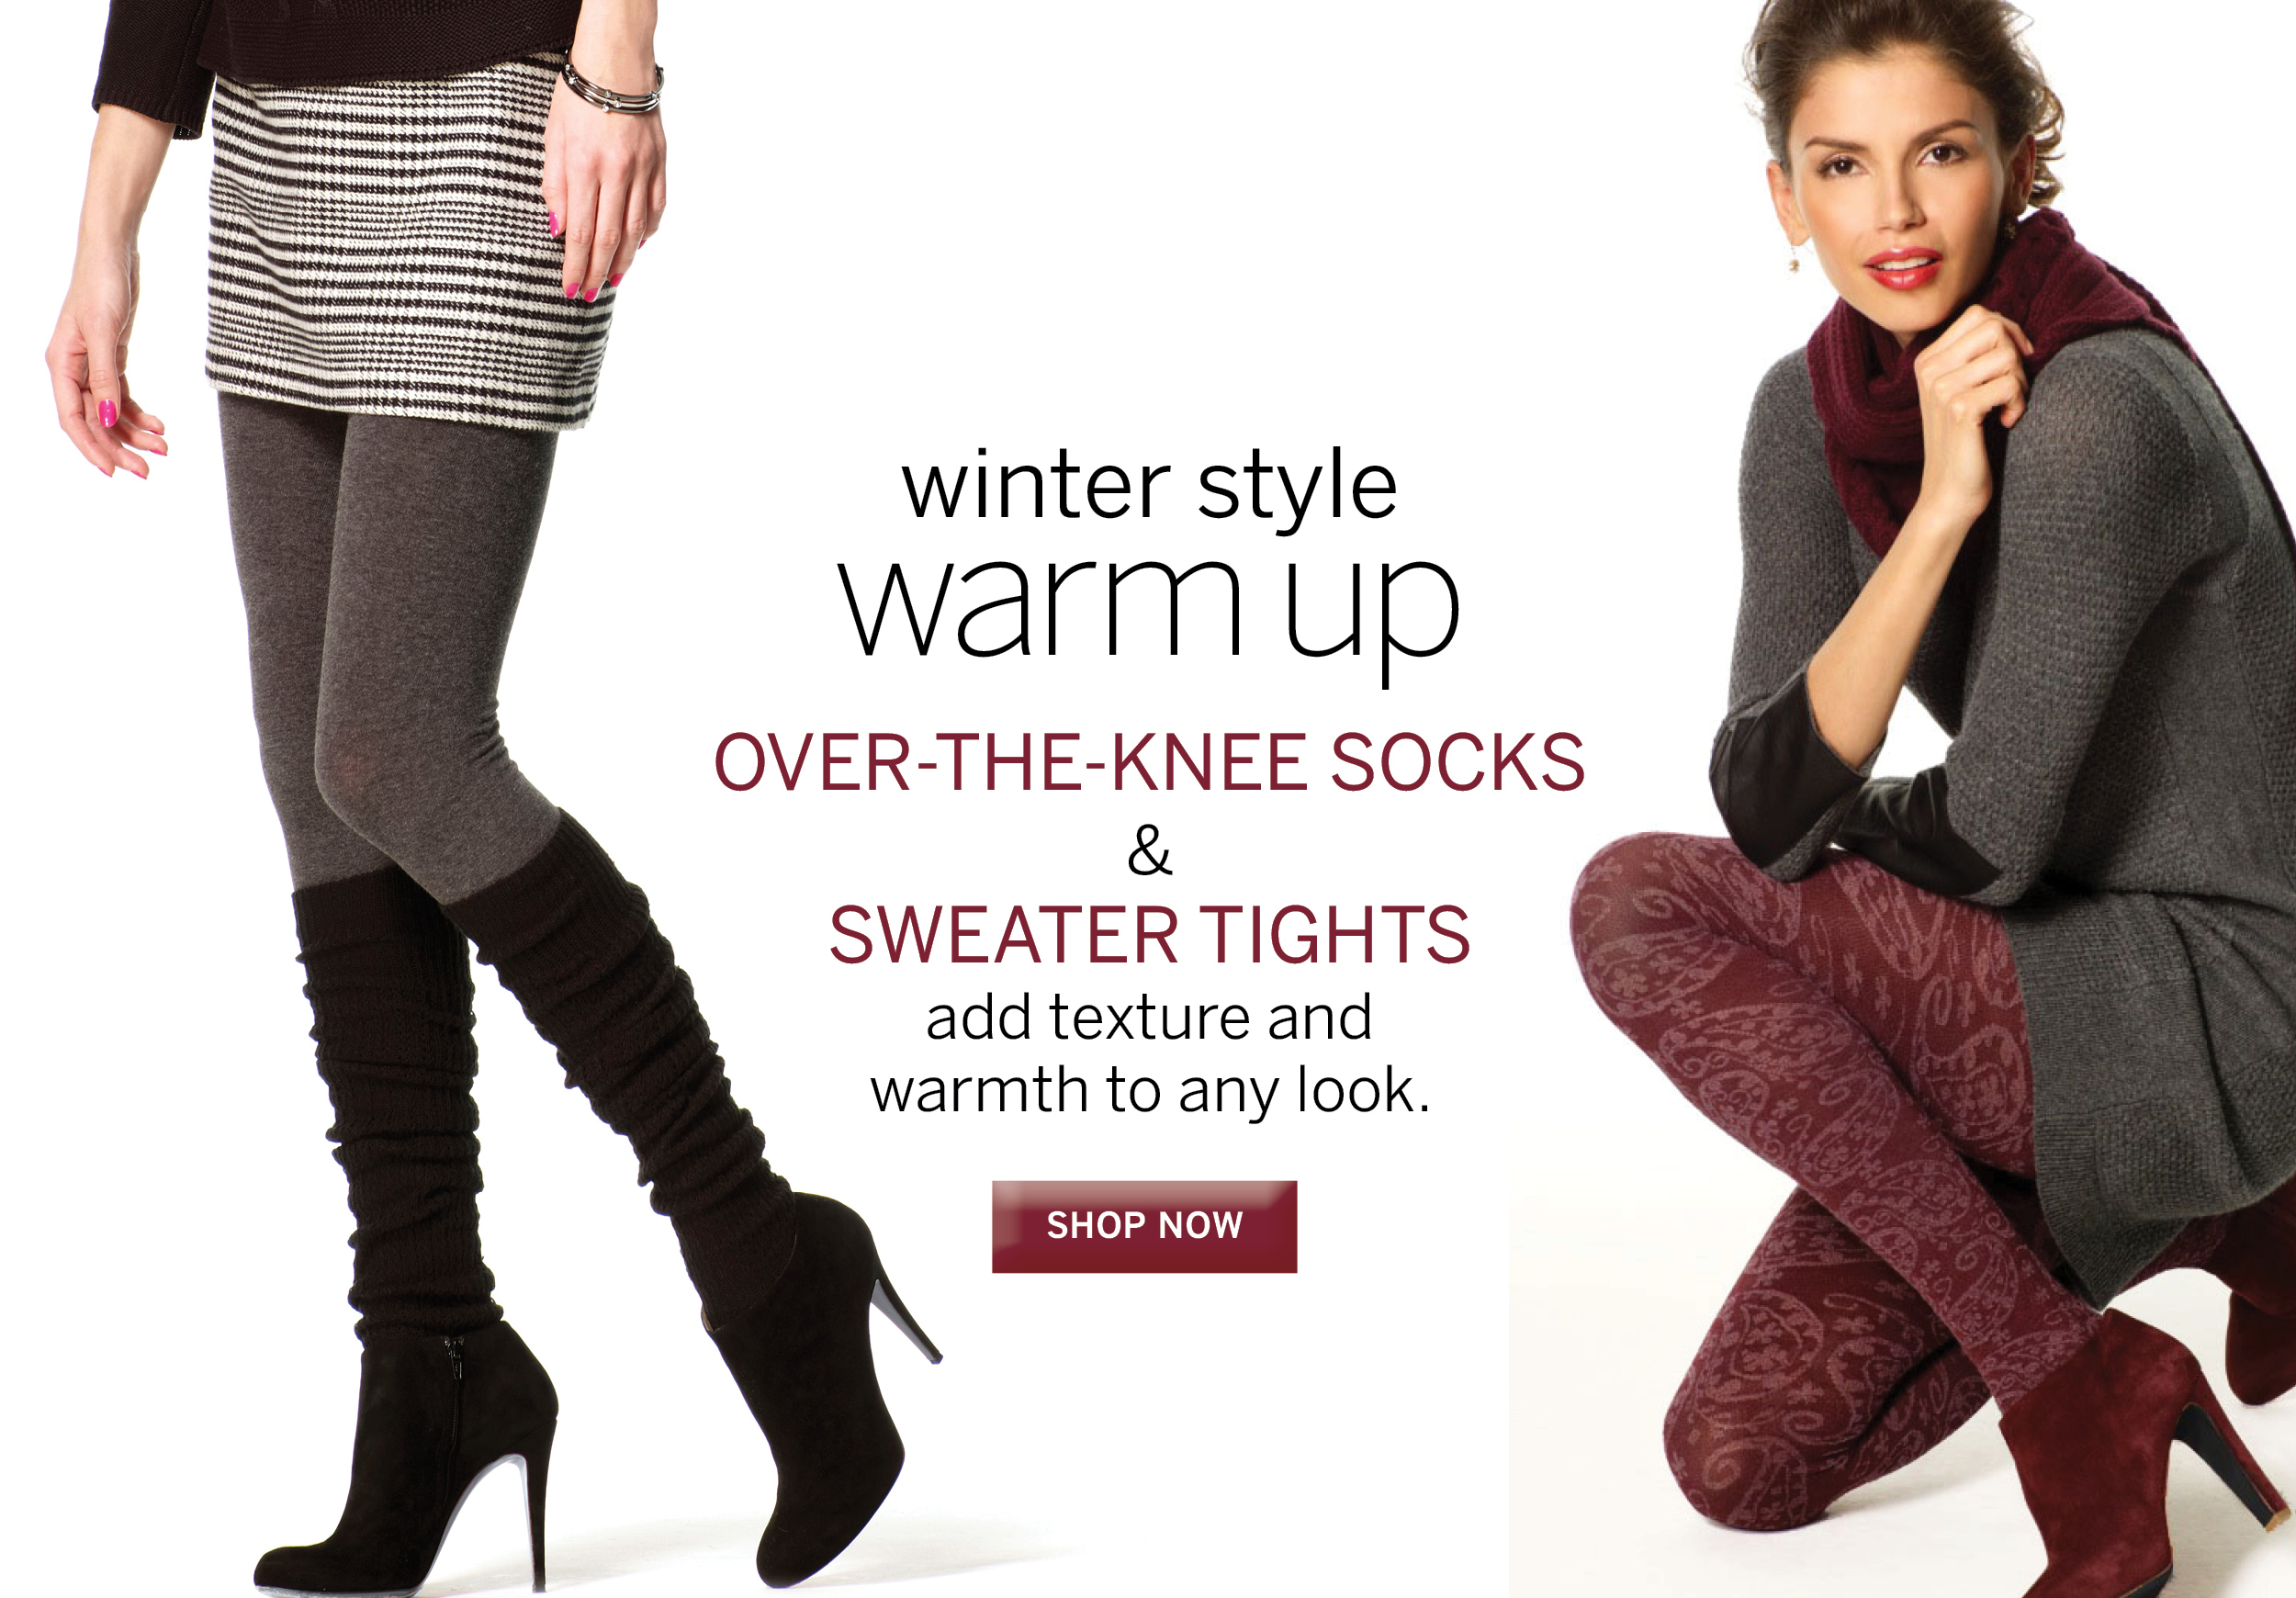 Have you seen our Sweater Tights and Over the Knee Socks?  Plus get free shipping with every purchase of $40 or more.